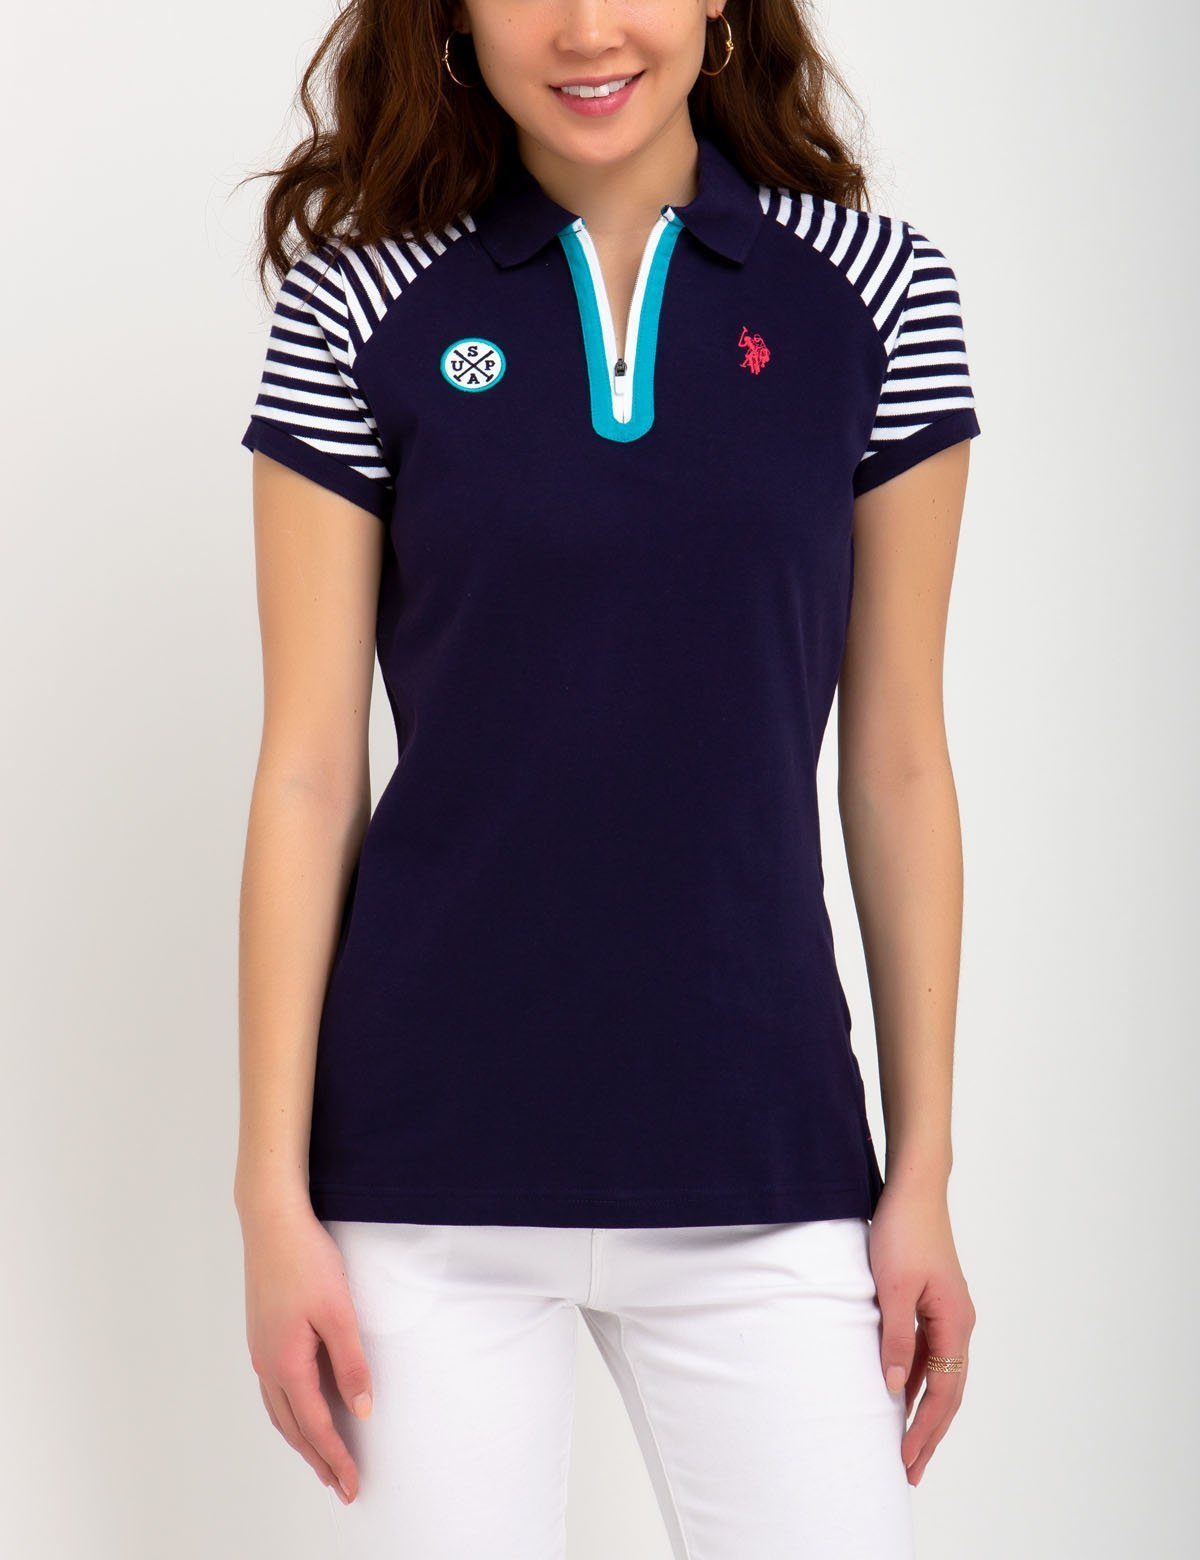 STRIPED SLEEVE POLO SHIRT - U.S. Polo Assn.